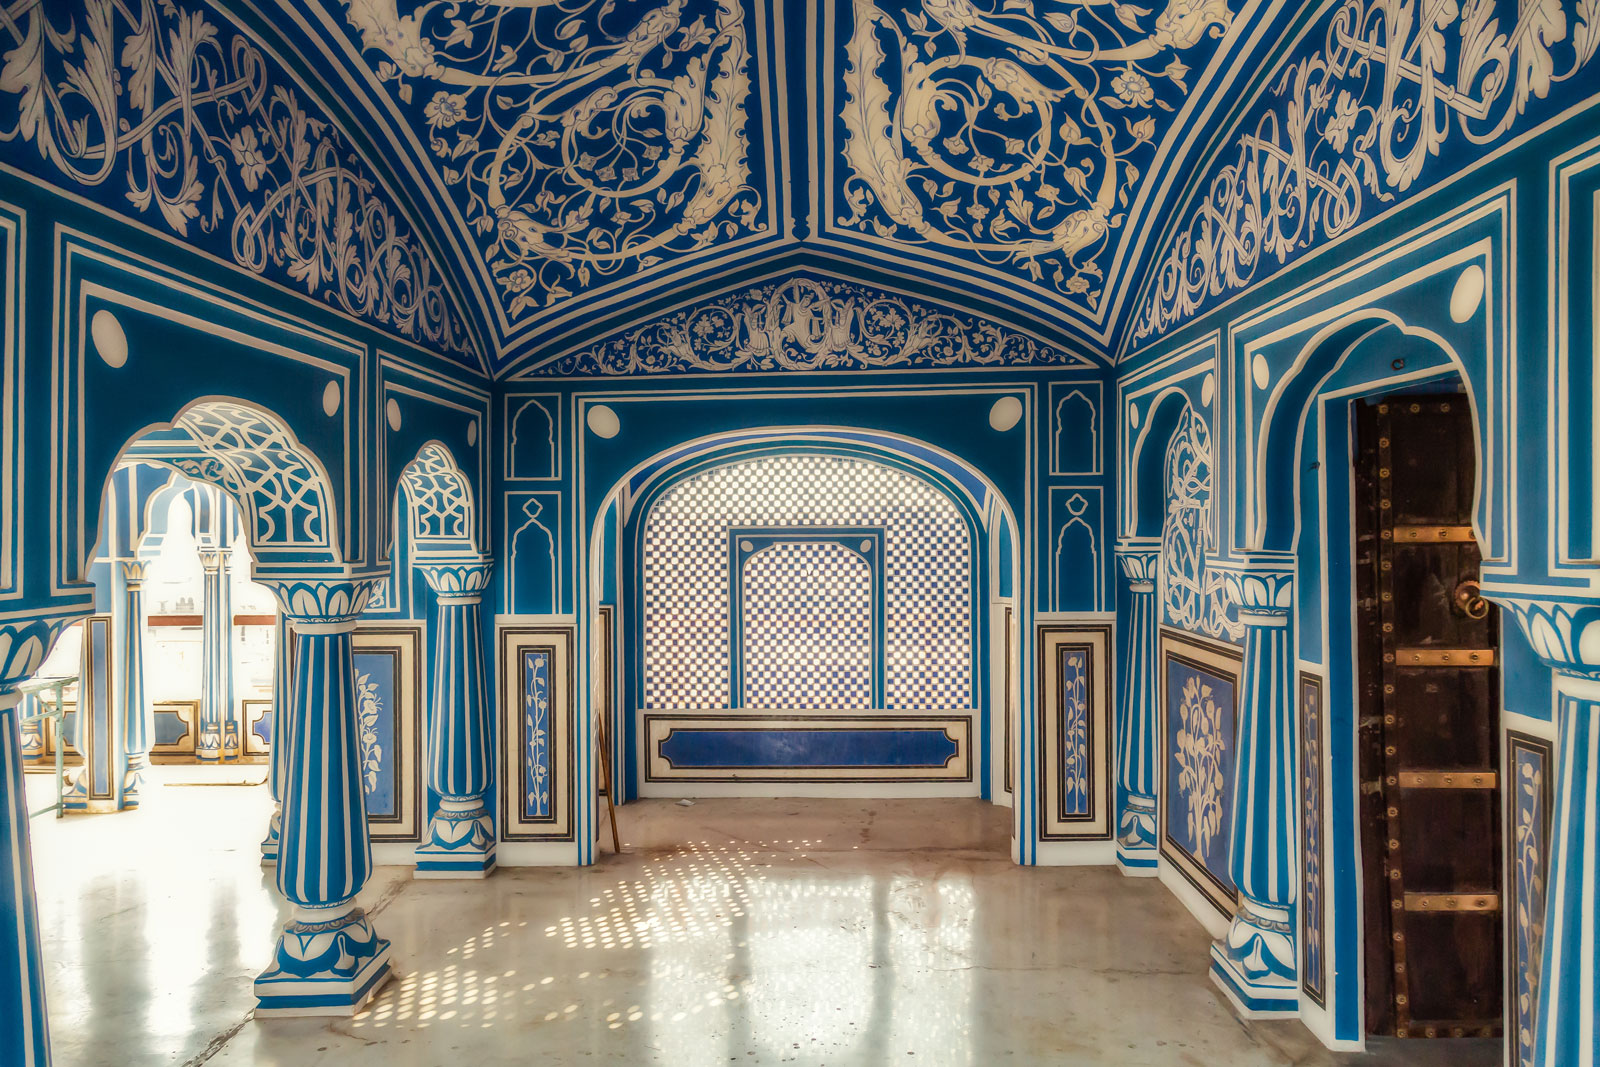 The famous Blue Room at City Palace.